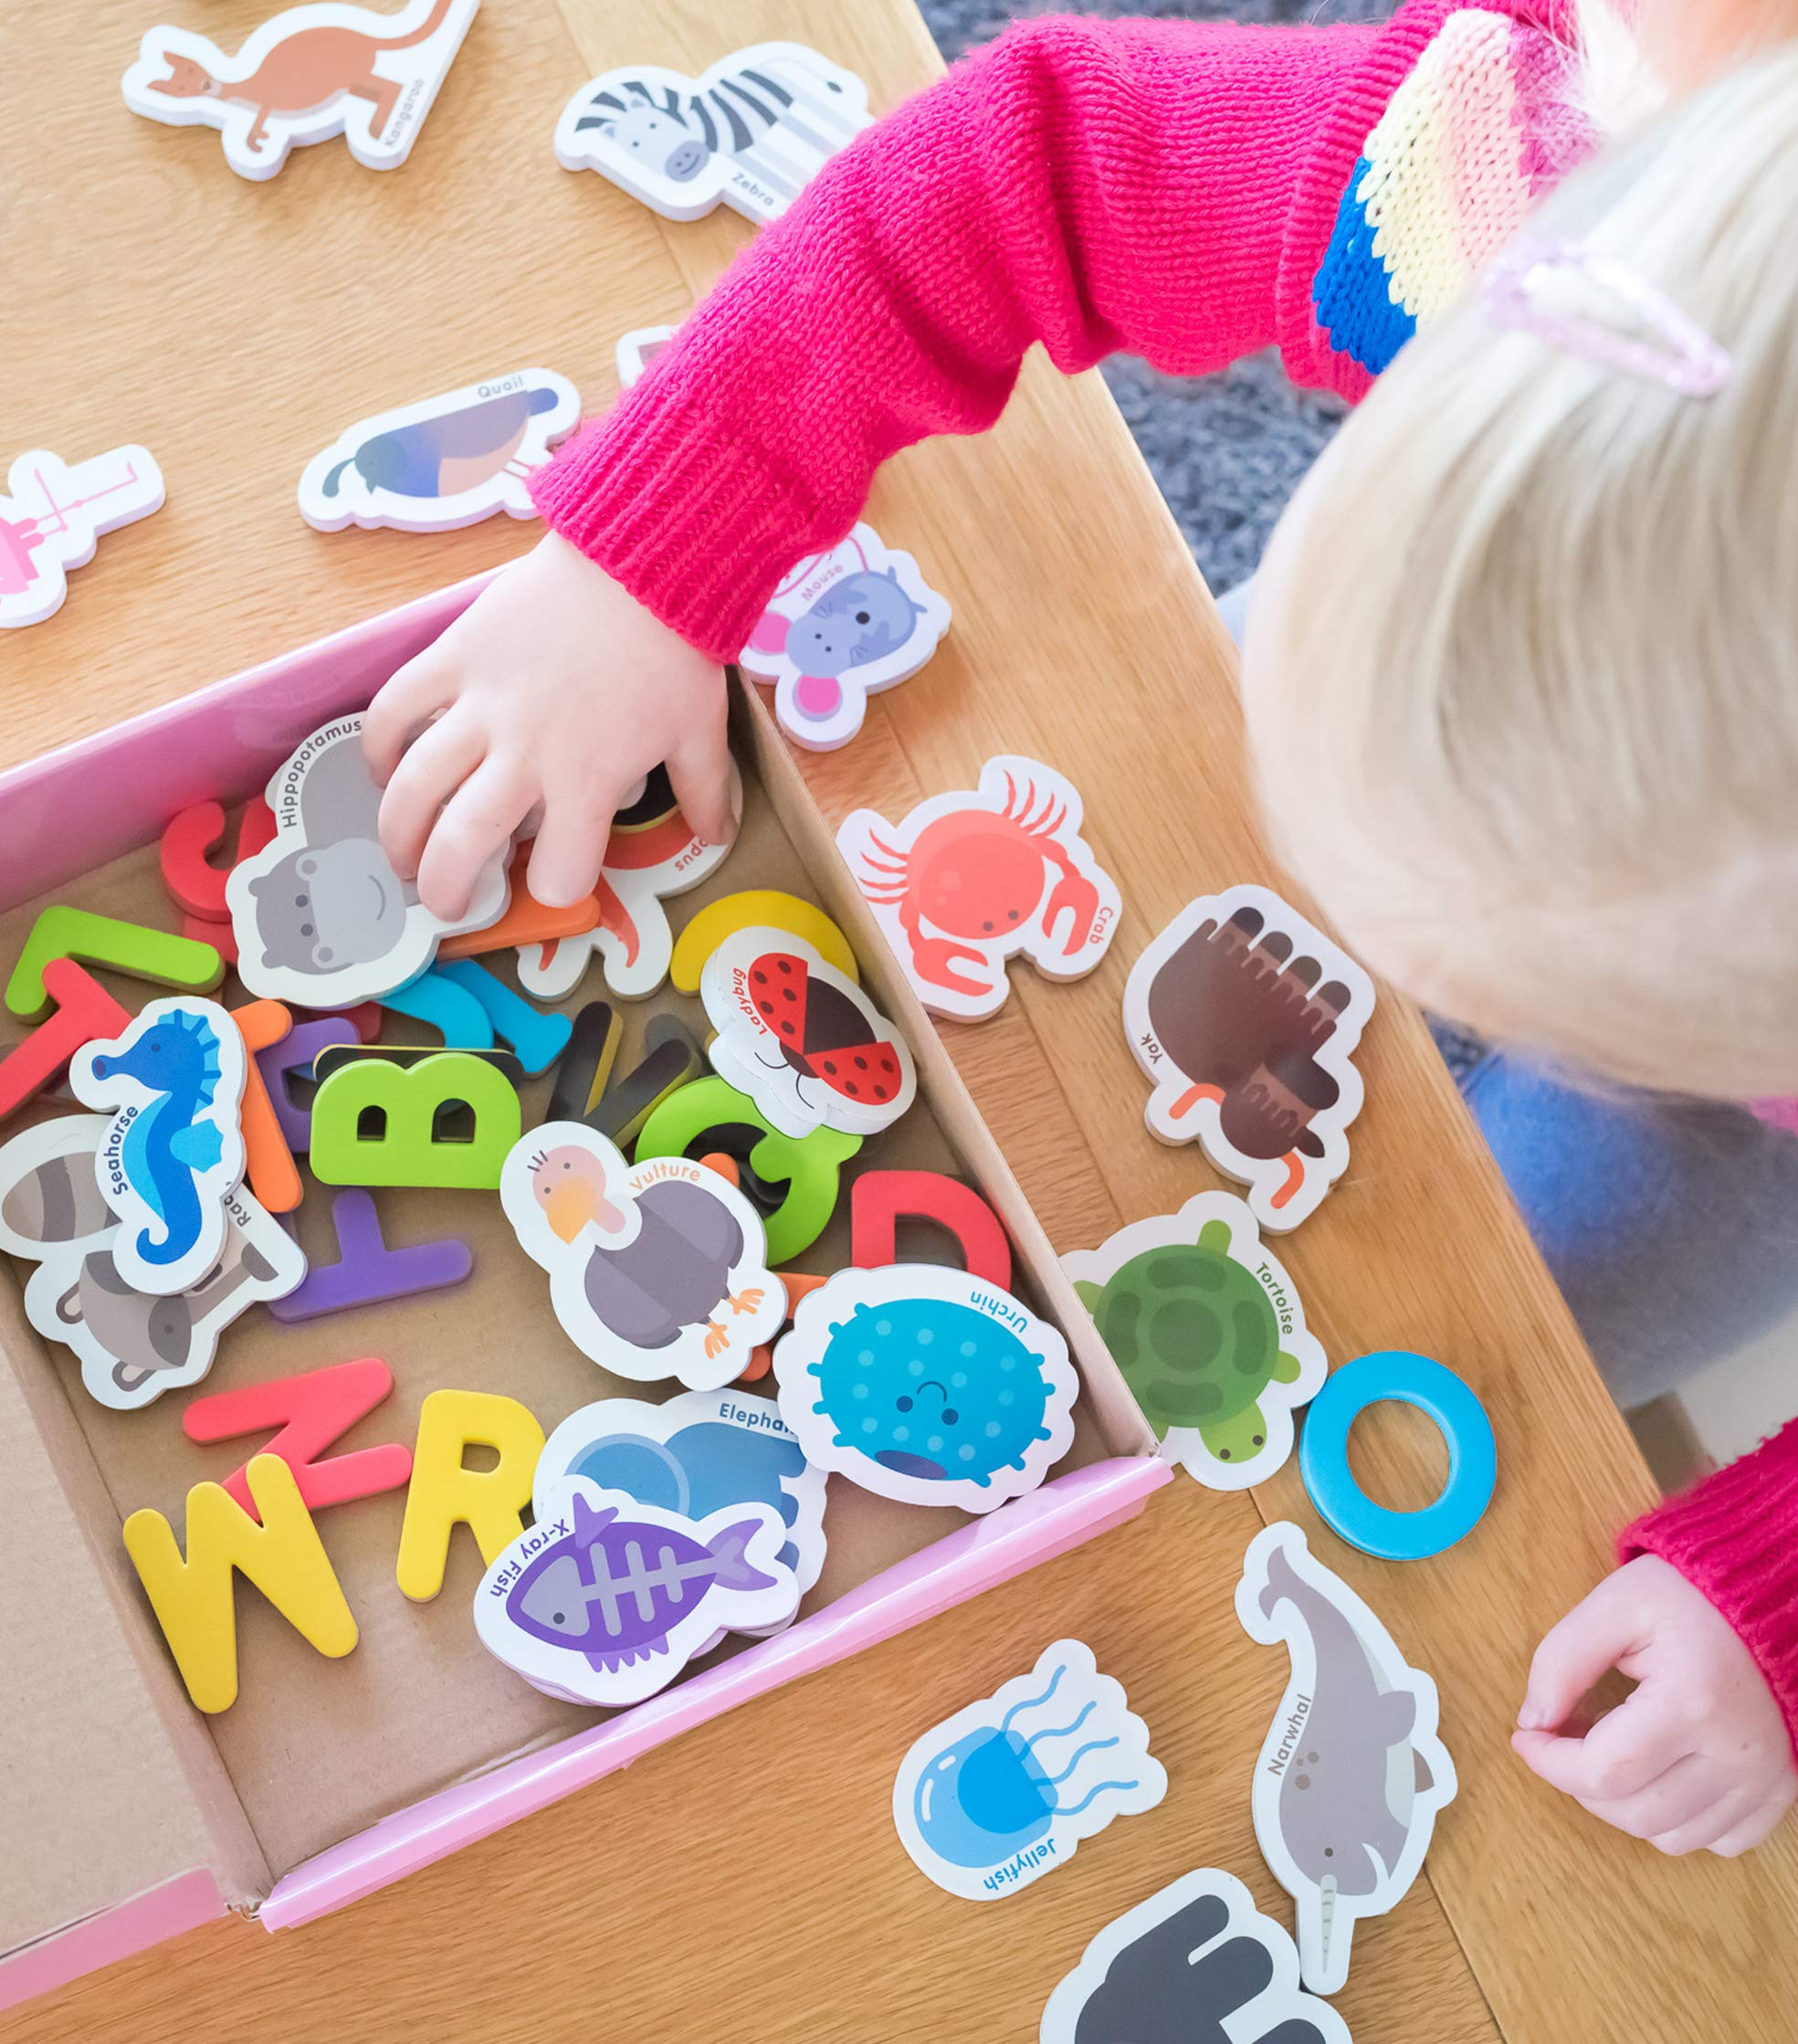 Curious Columbus Animal Magnets For Kids. Includes Alphabet Letters. Set of 52 Pieces. Foam Educational Magnetic Toy Objects For Word Recognition. 26 Picture Fridge Magnets and 26 ABC Letters From A-Z by Curious Columbus (Image #5)